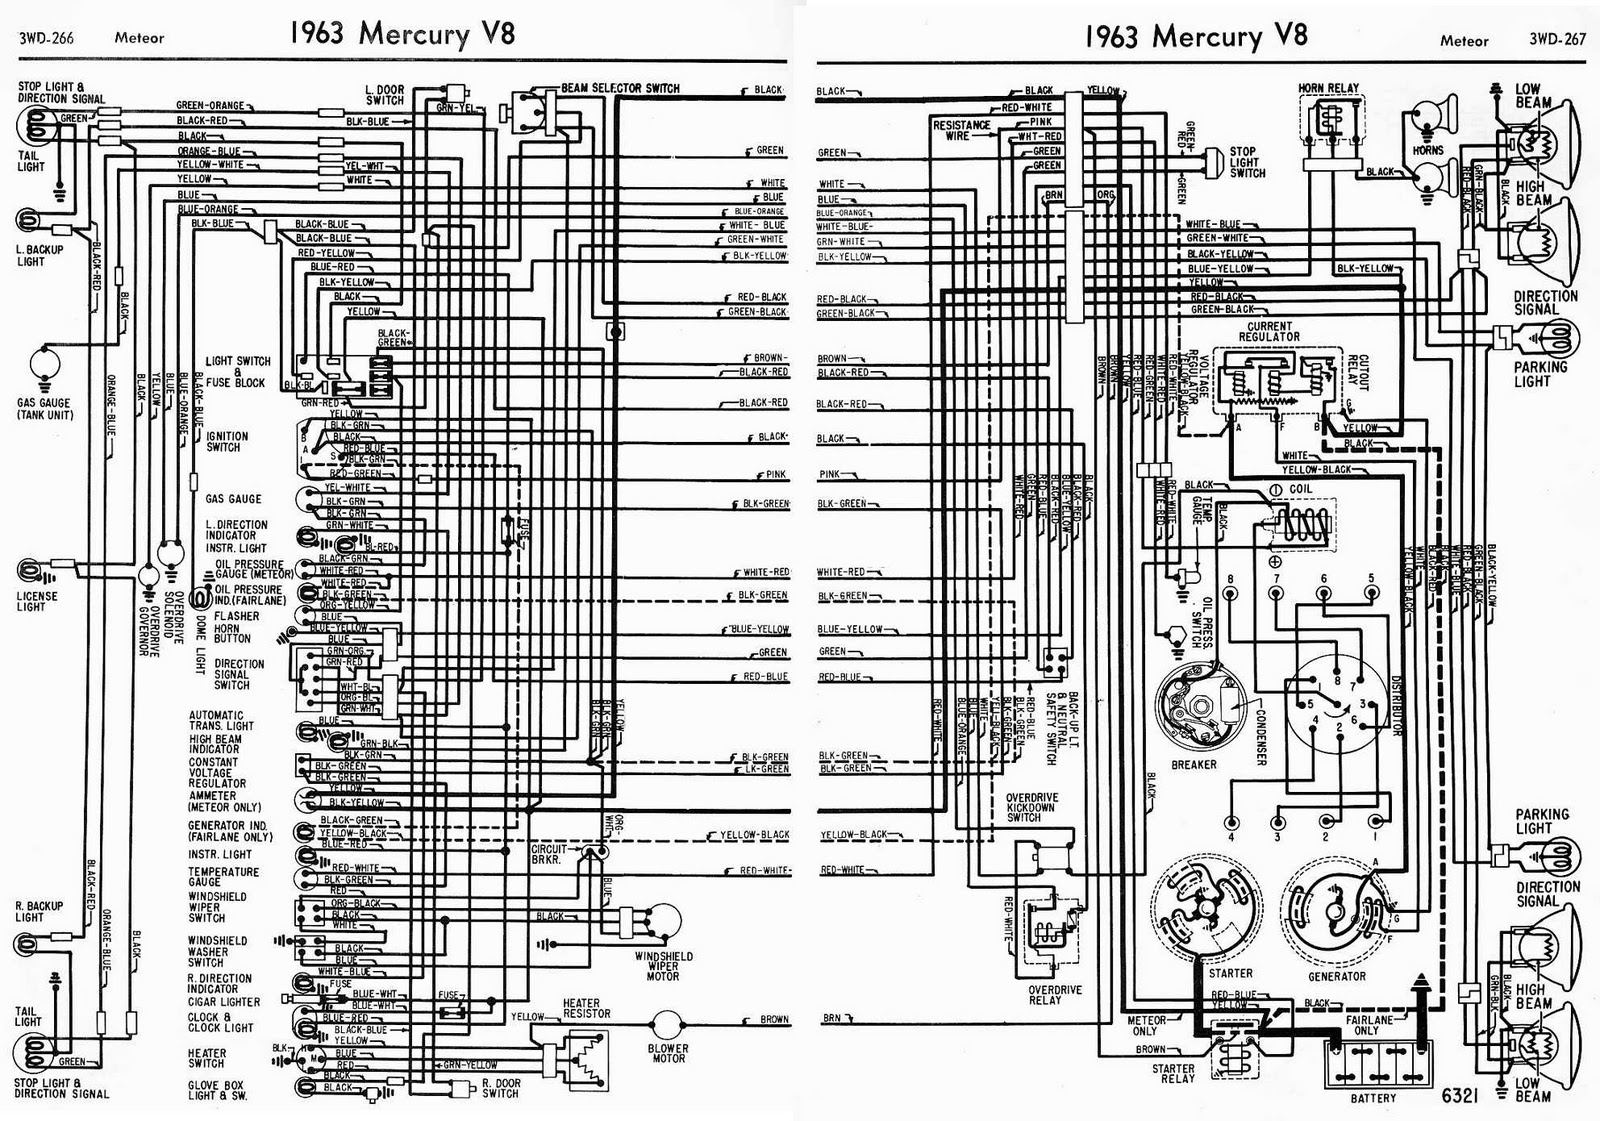 1956 Mercury Montclair Wiring Diagram Schematic Likewise Ford Car On Chevy Library1963 V8 Meteor Complete Diagrams